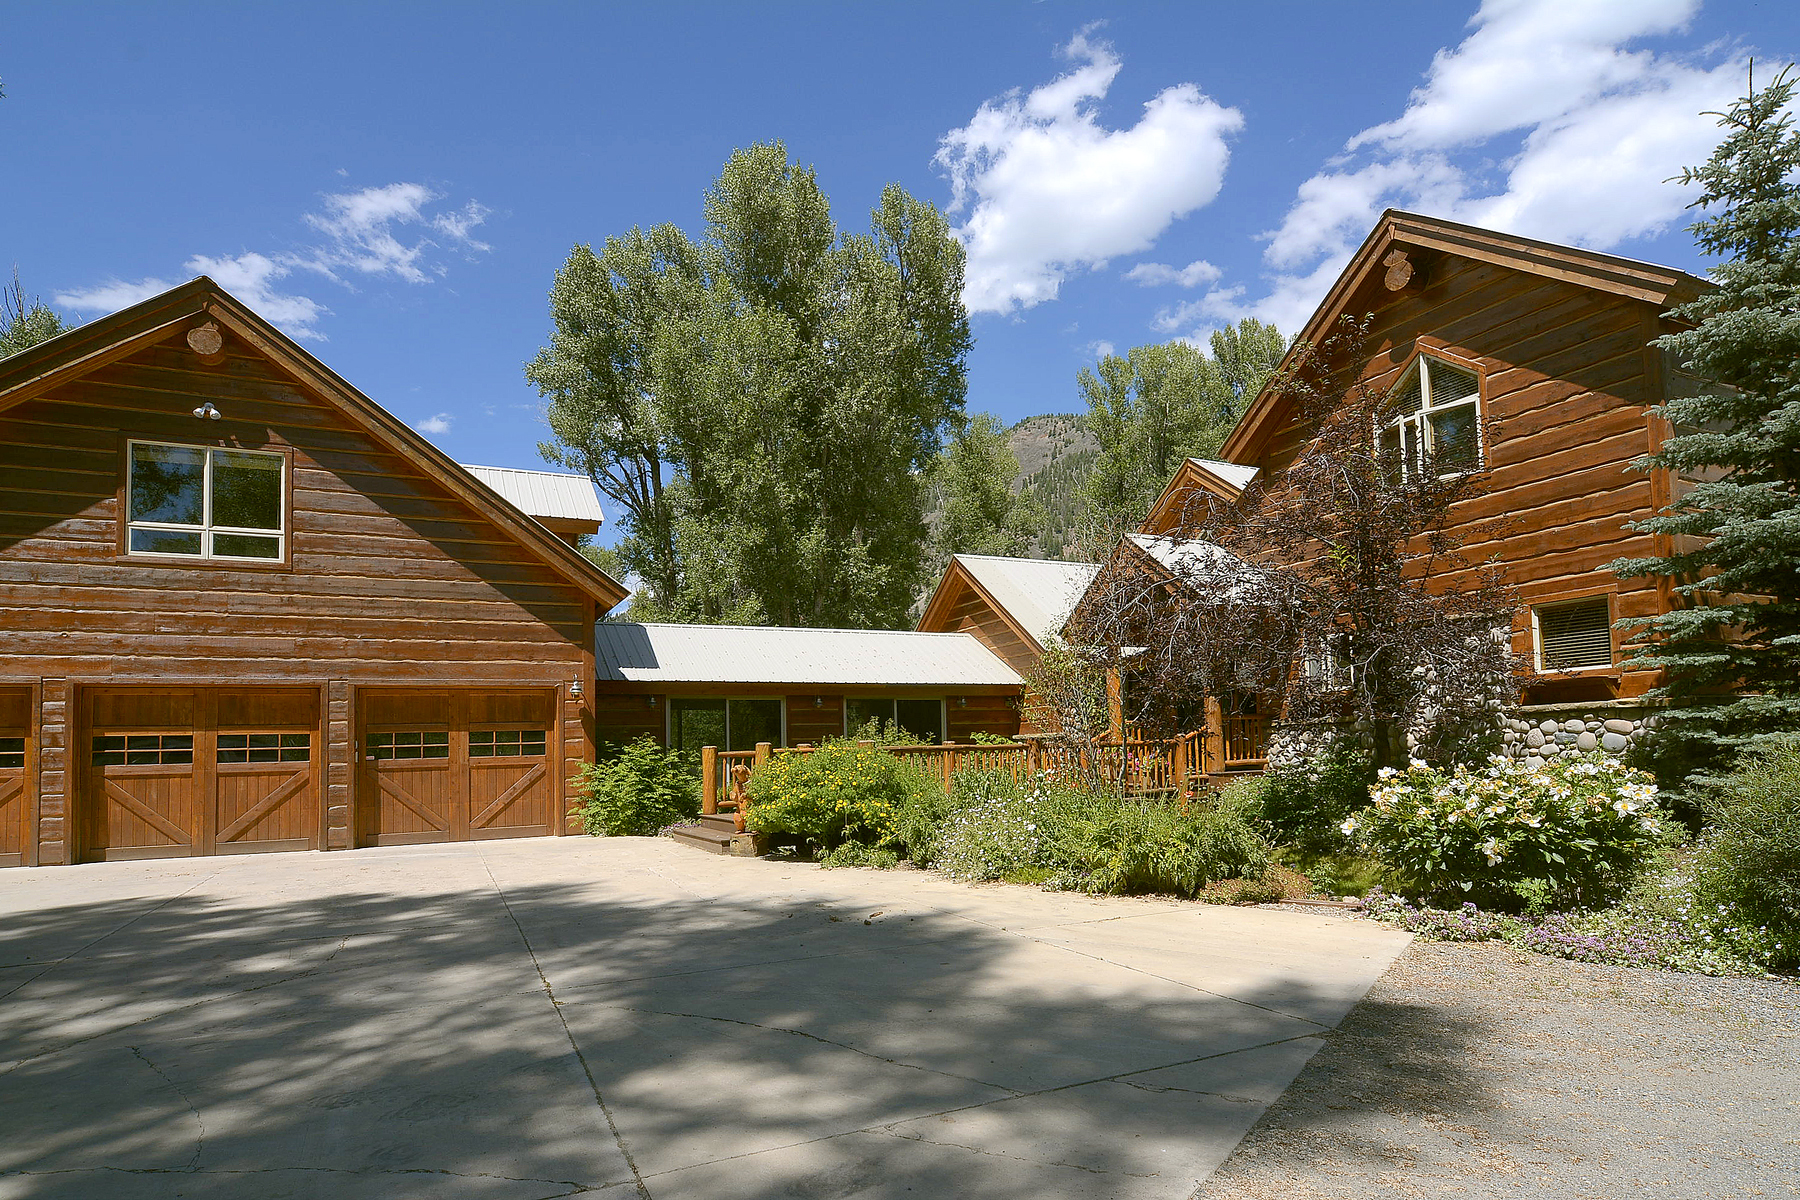 Maison unifamiliale pour l Vente à Riverfront Ranch 193 Larkspur Lane Crested Butte, Colorado, 81224 États-Unis